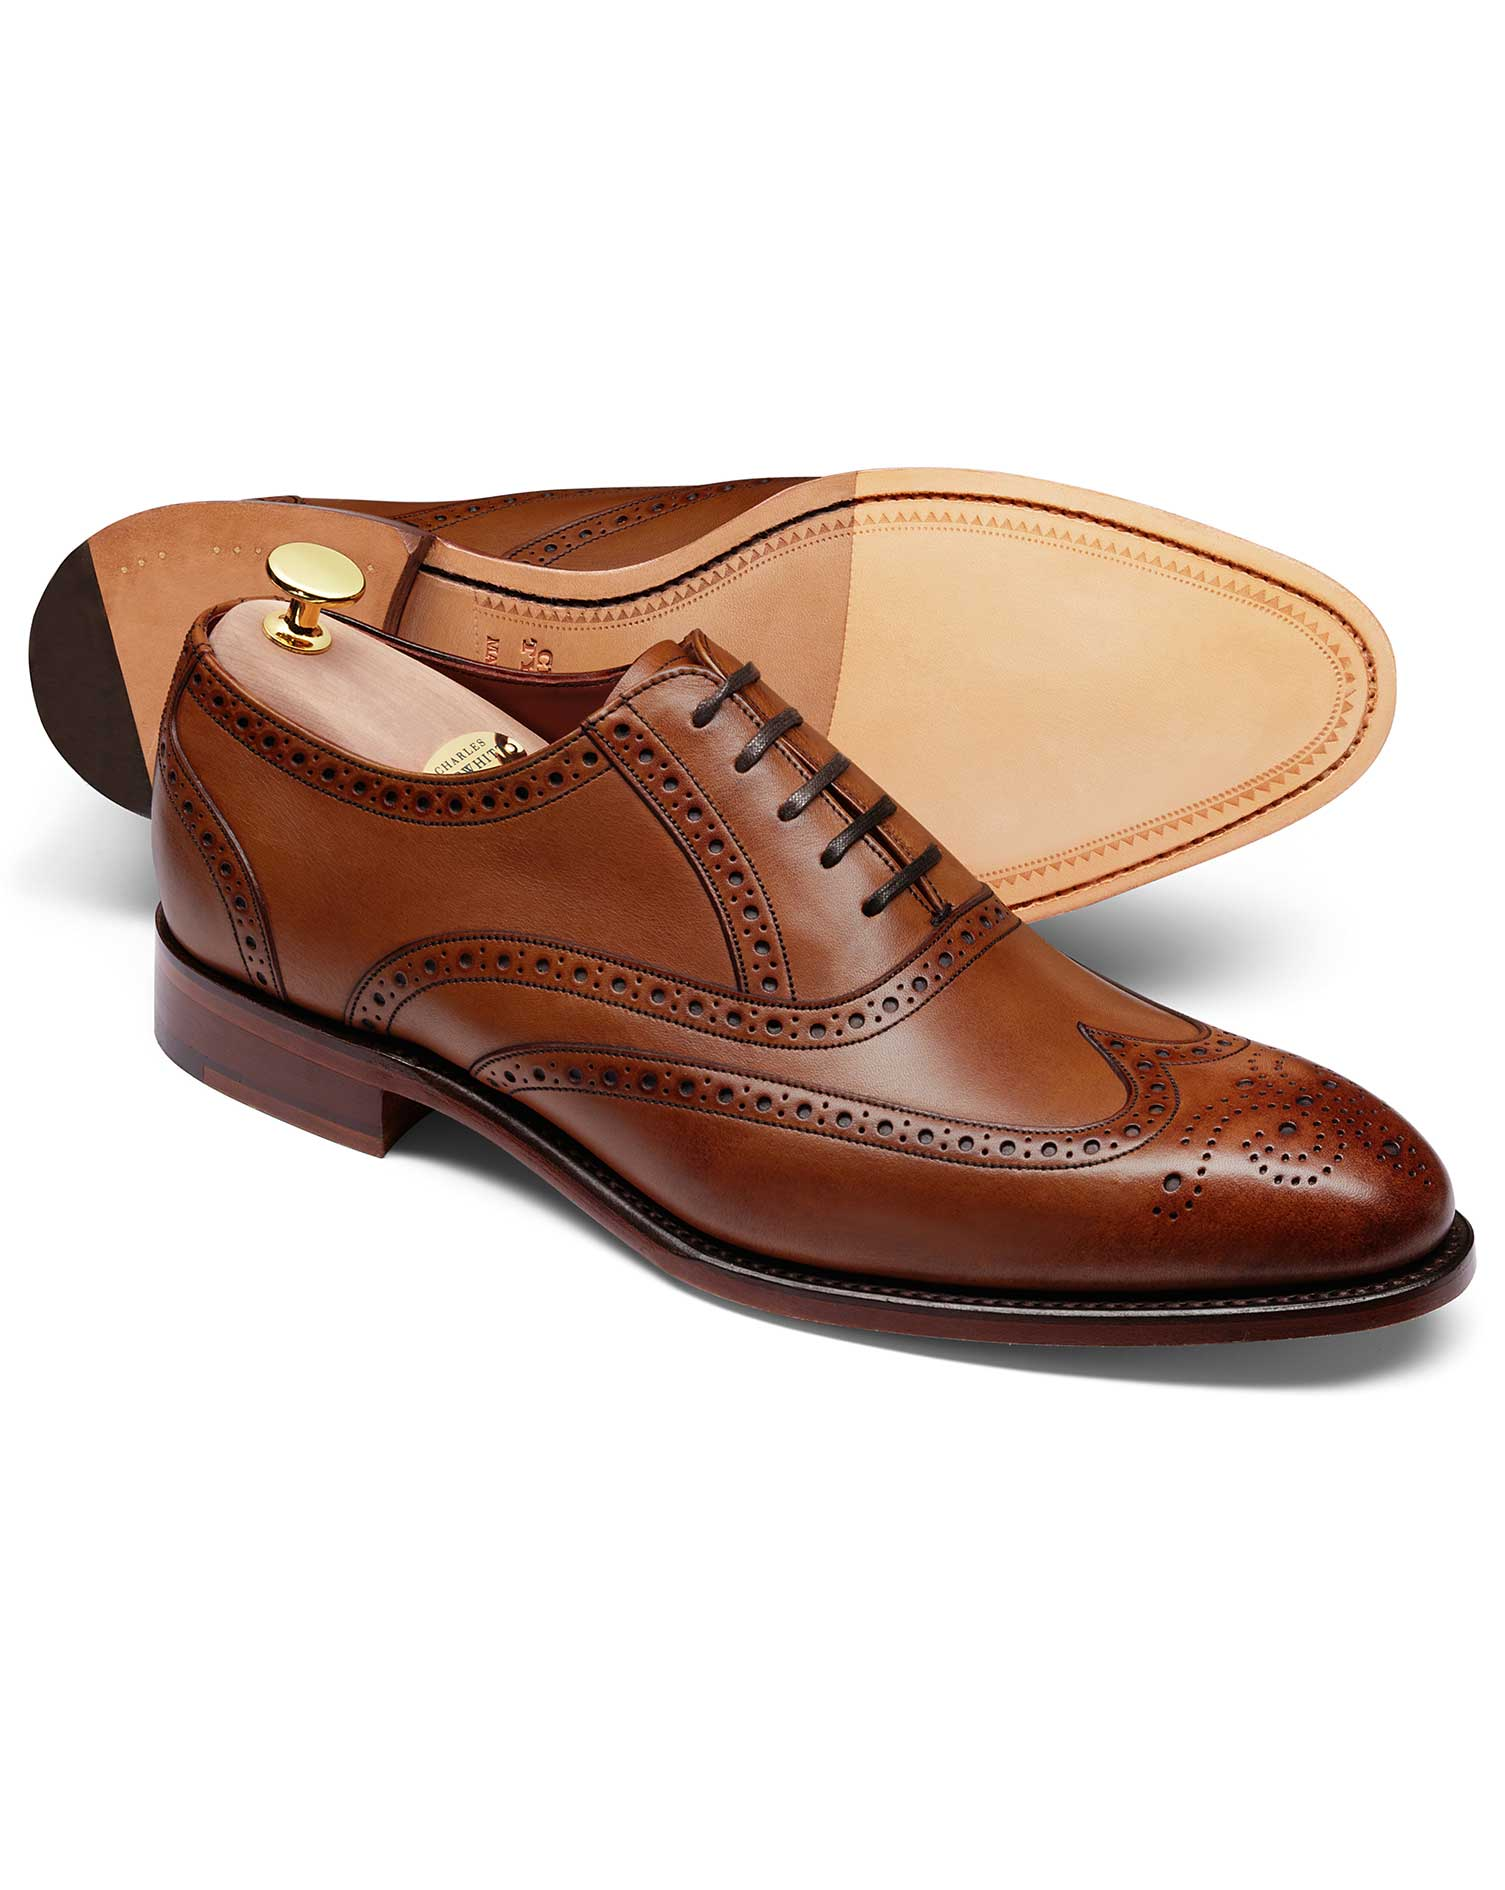 Chestnut Made In England Oxford Brogue Shoe Size 13 W by Charles Tyrwhitt